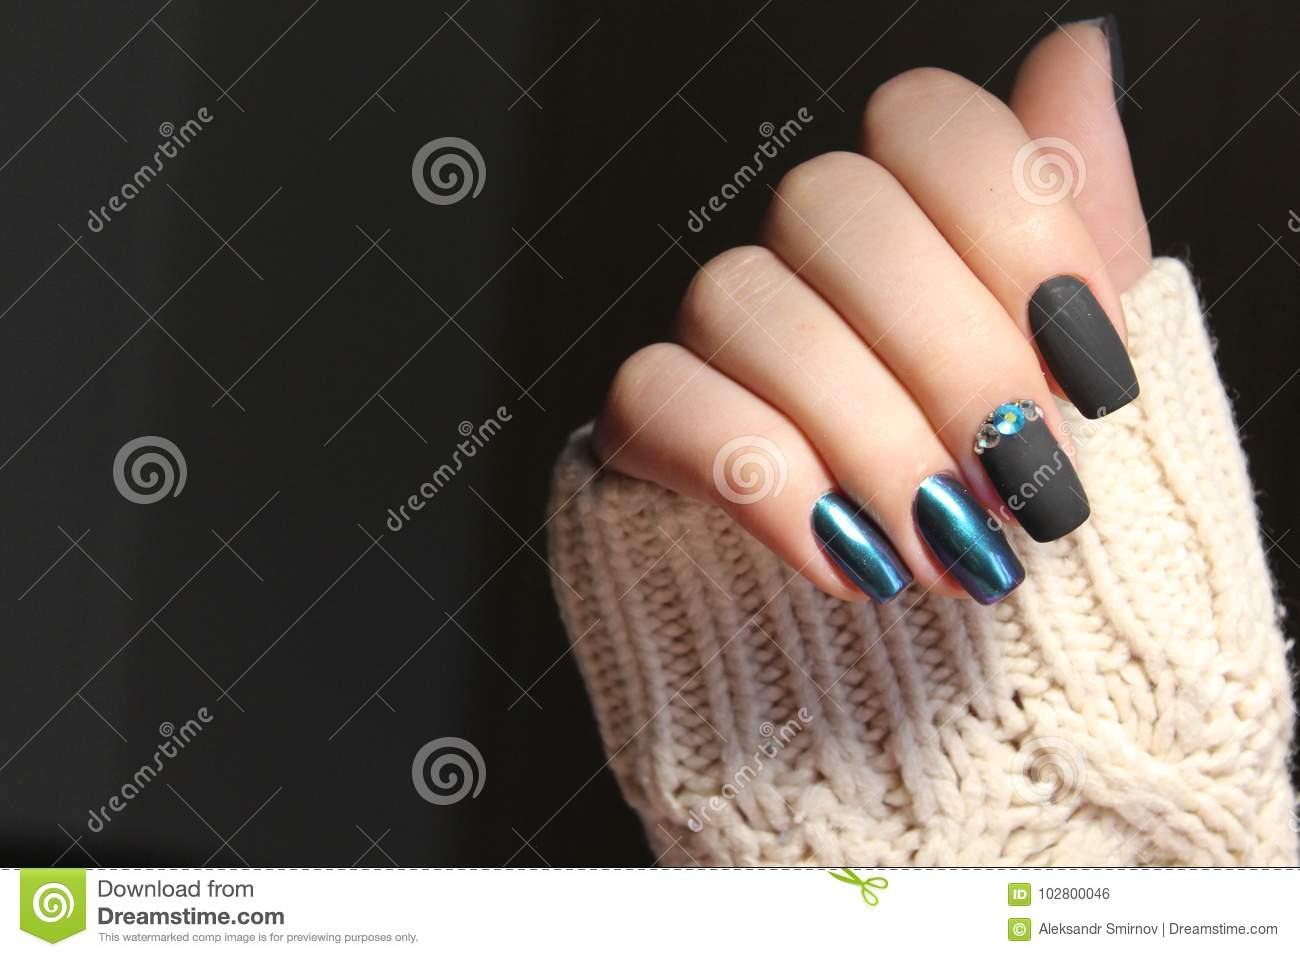 Nail design stock photo. Image of paint, color, beautiful - 102800046